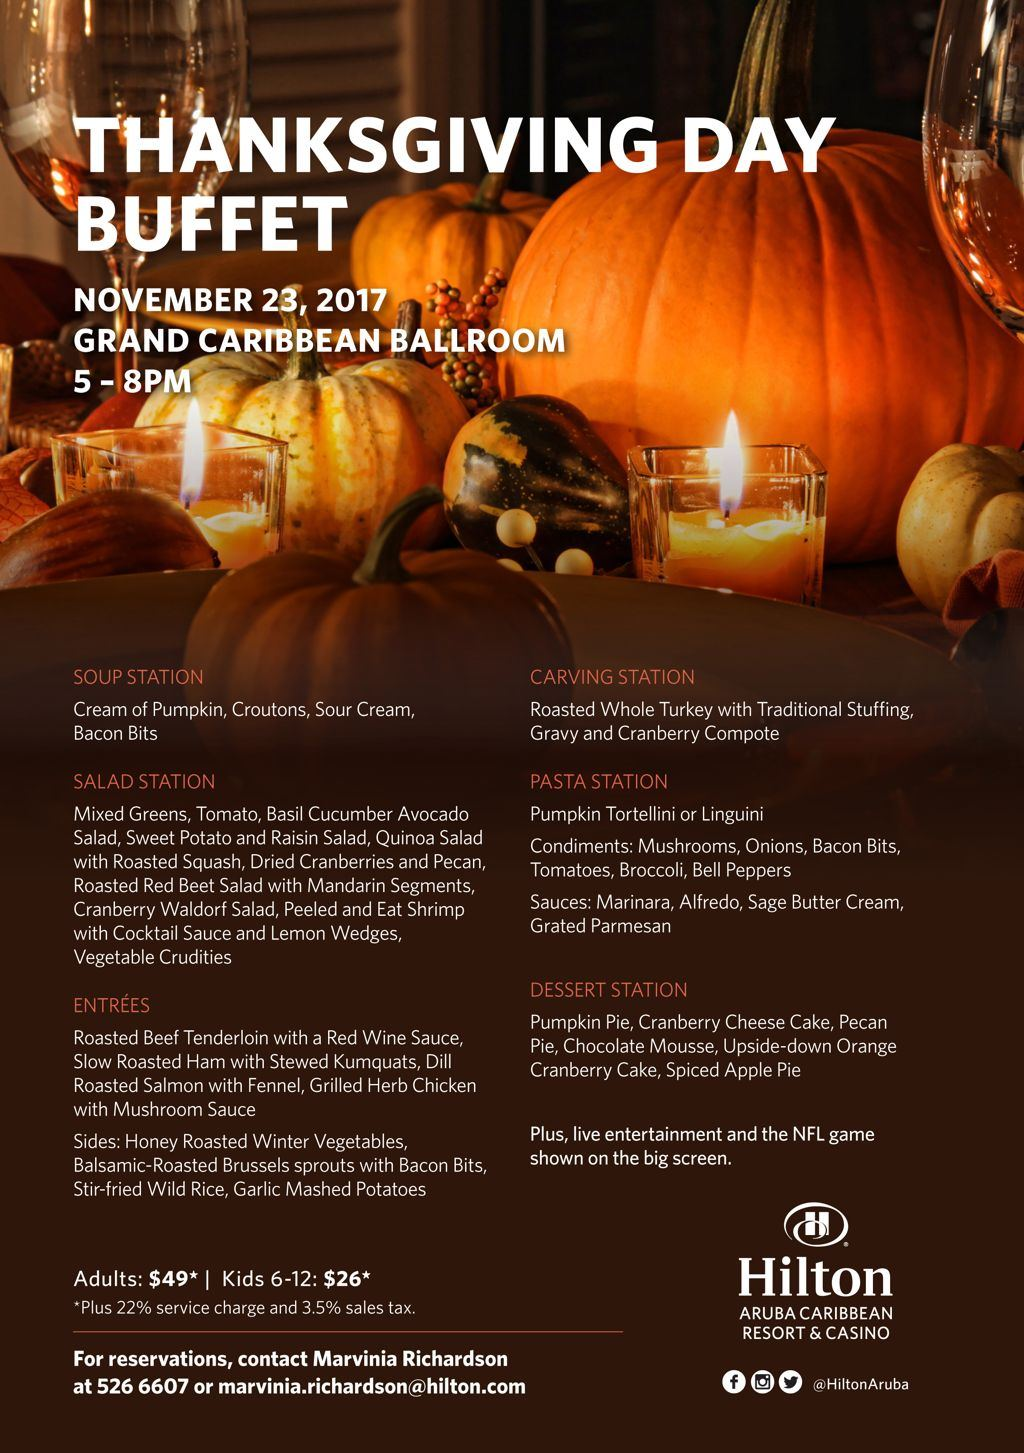 Hilton's Thanksgiving Day Dinner Buffet